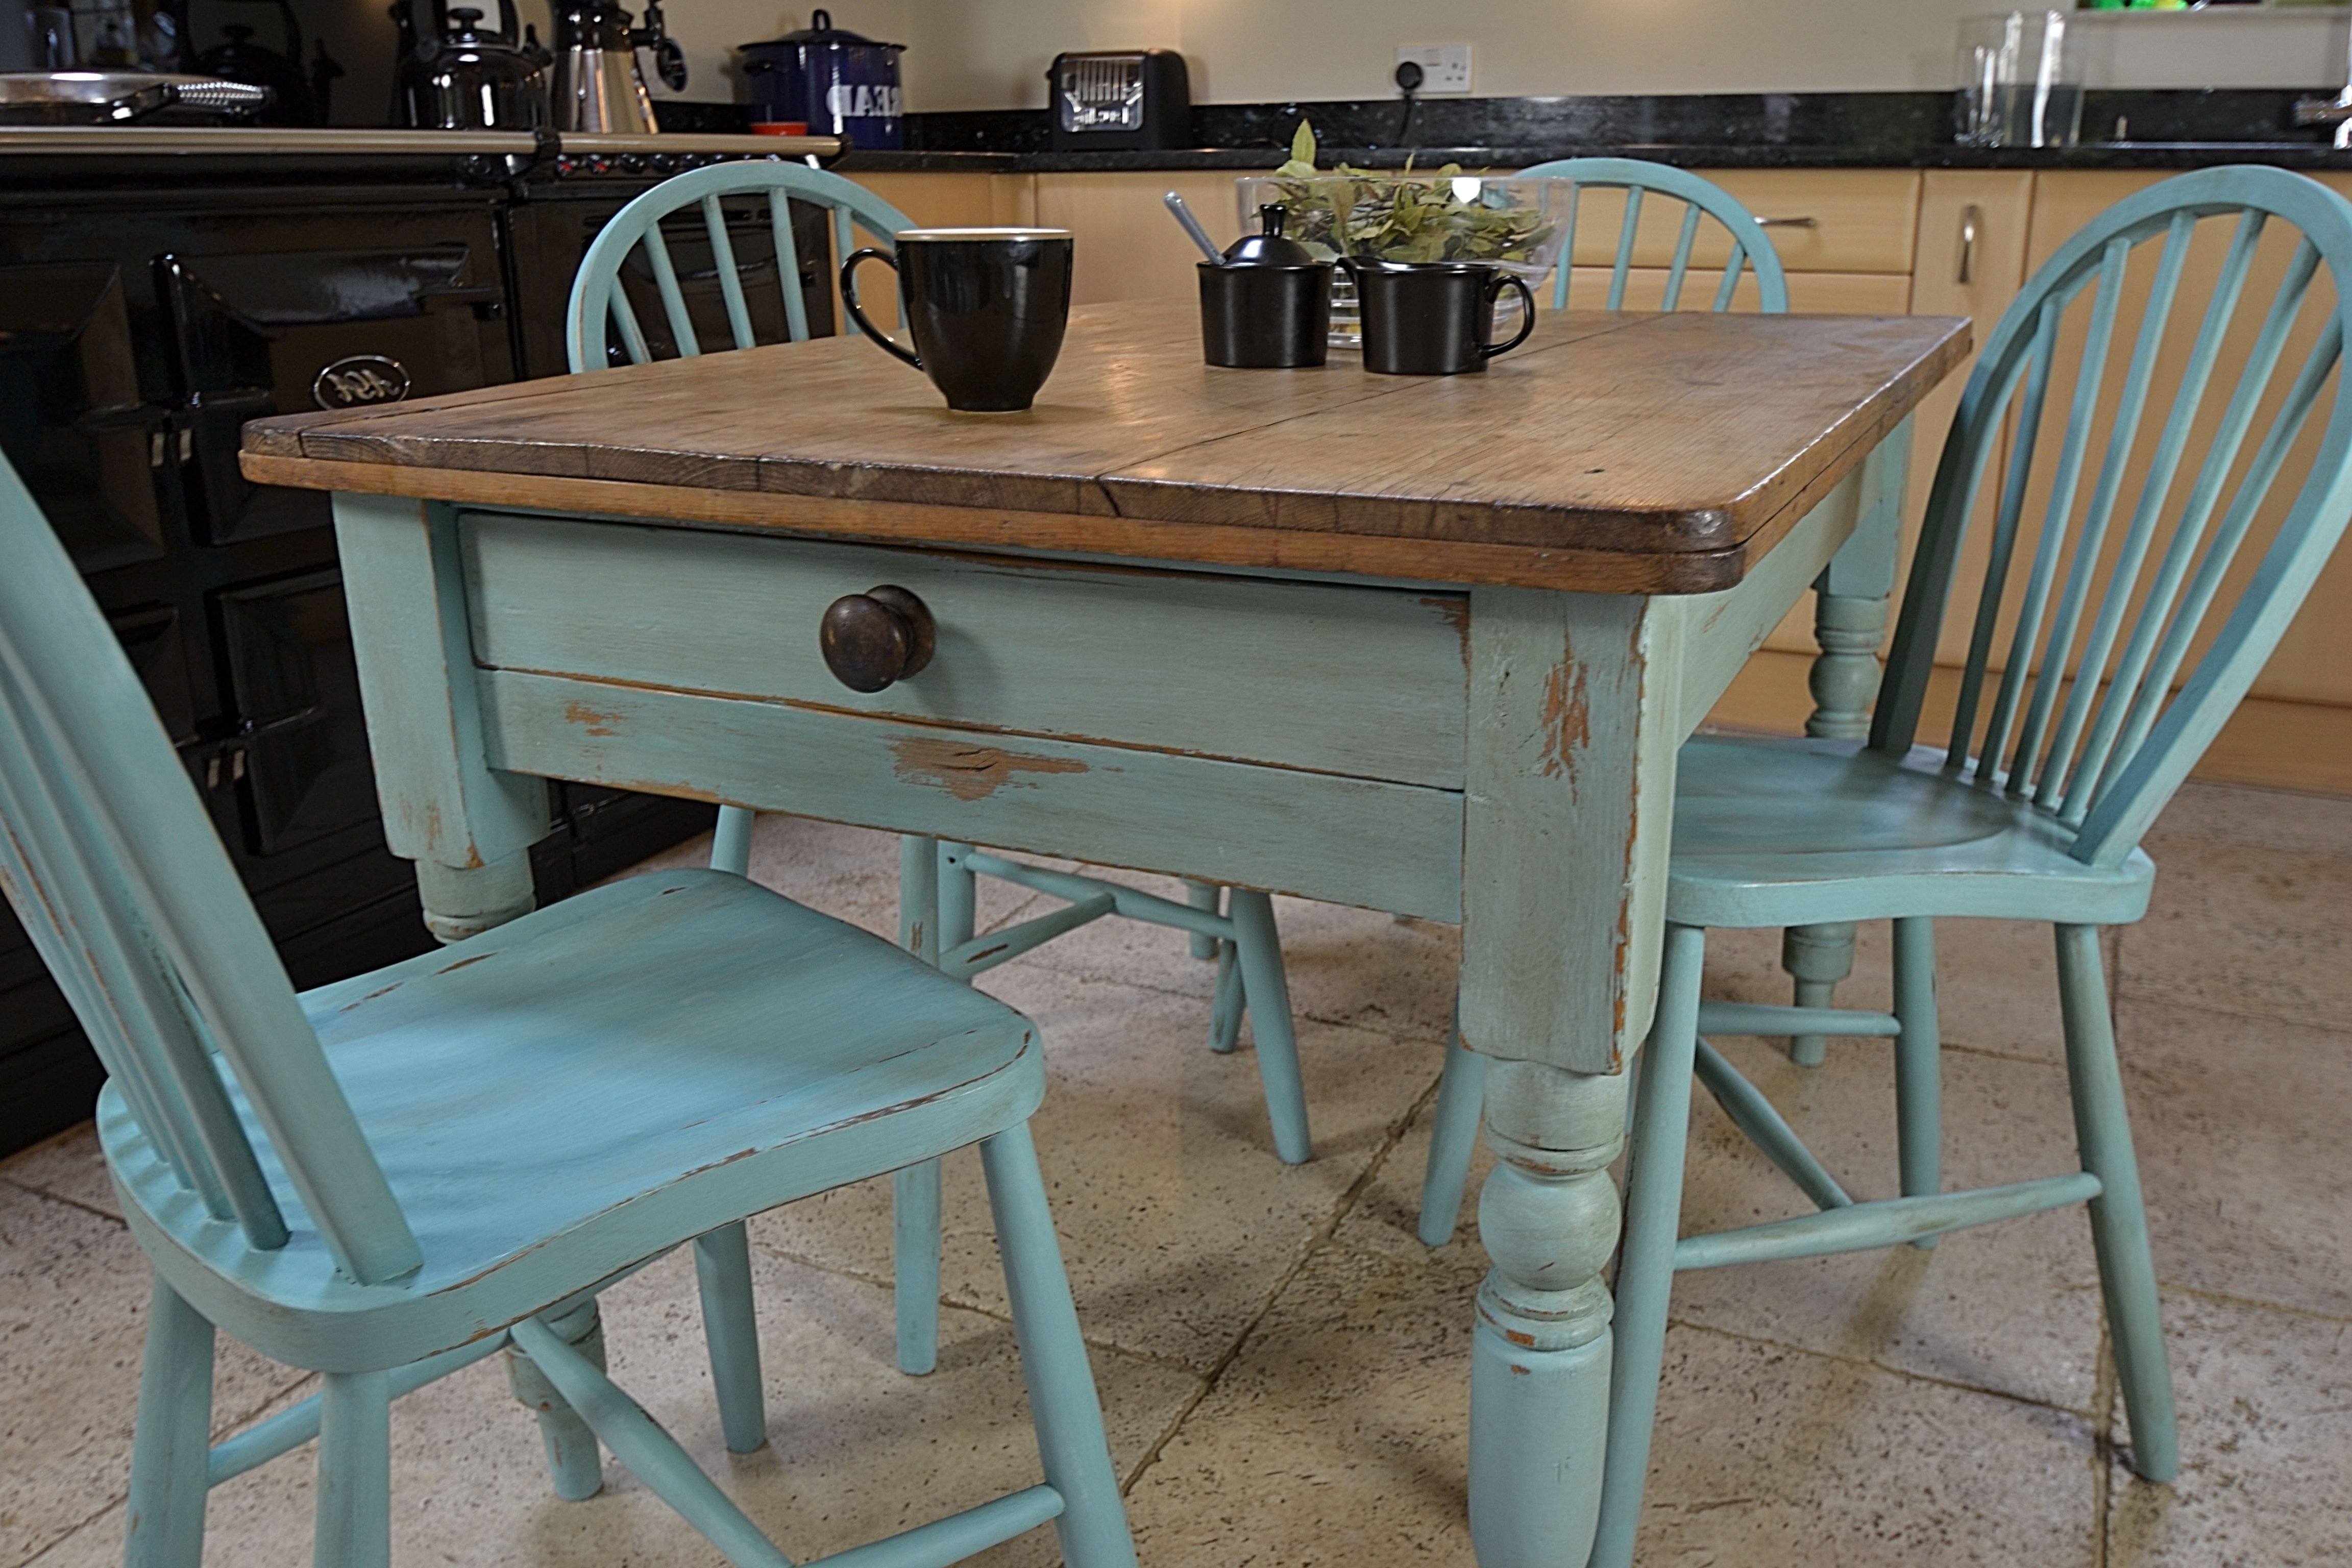 Favorite Shabby Chic Farmhouse Rustic Dining Table With 4 Stickback Chairs Intended For Shabby Chic Dining Sets (View 4 of 25)